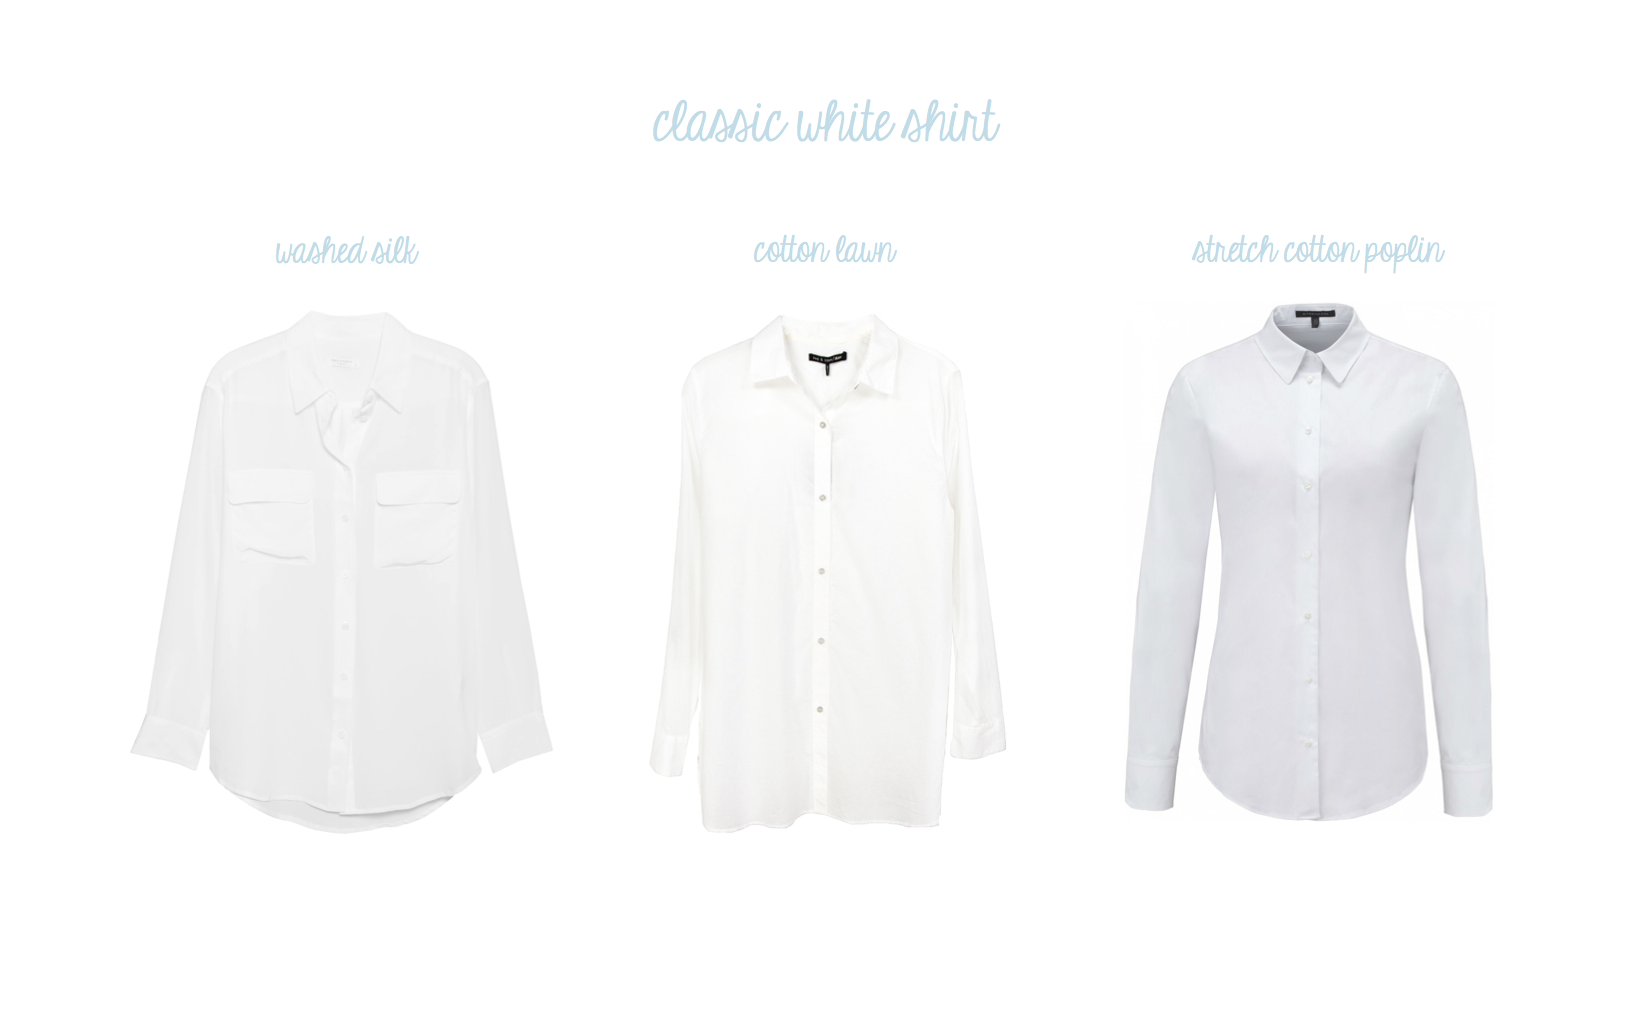 Equipment Signature Shirt, Rag & Bone Beau Shirt and Strenesse Stretch Shirt